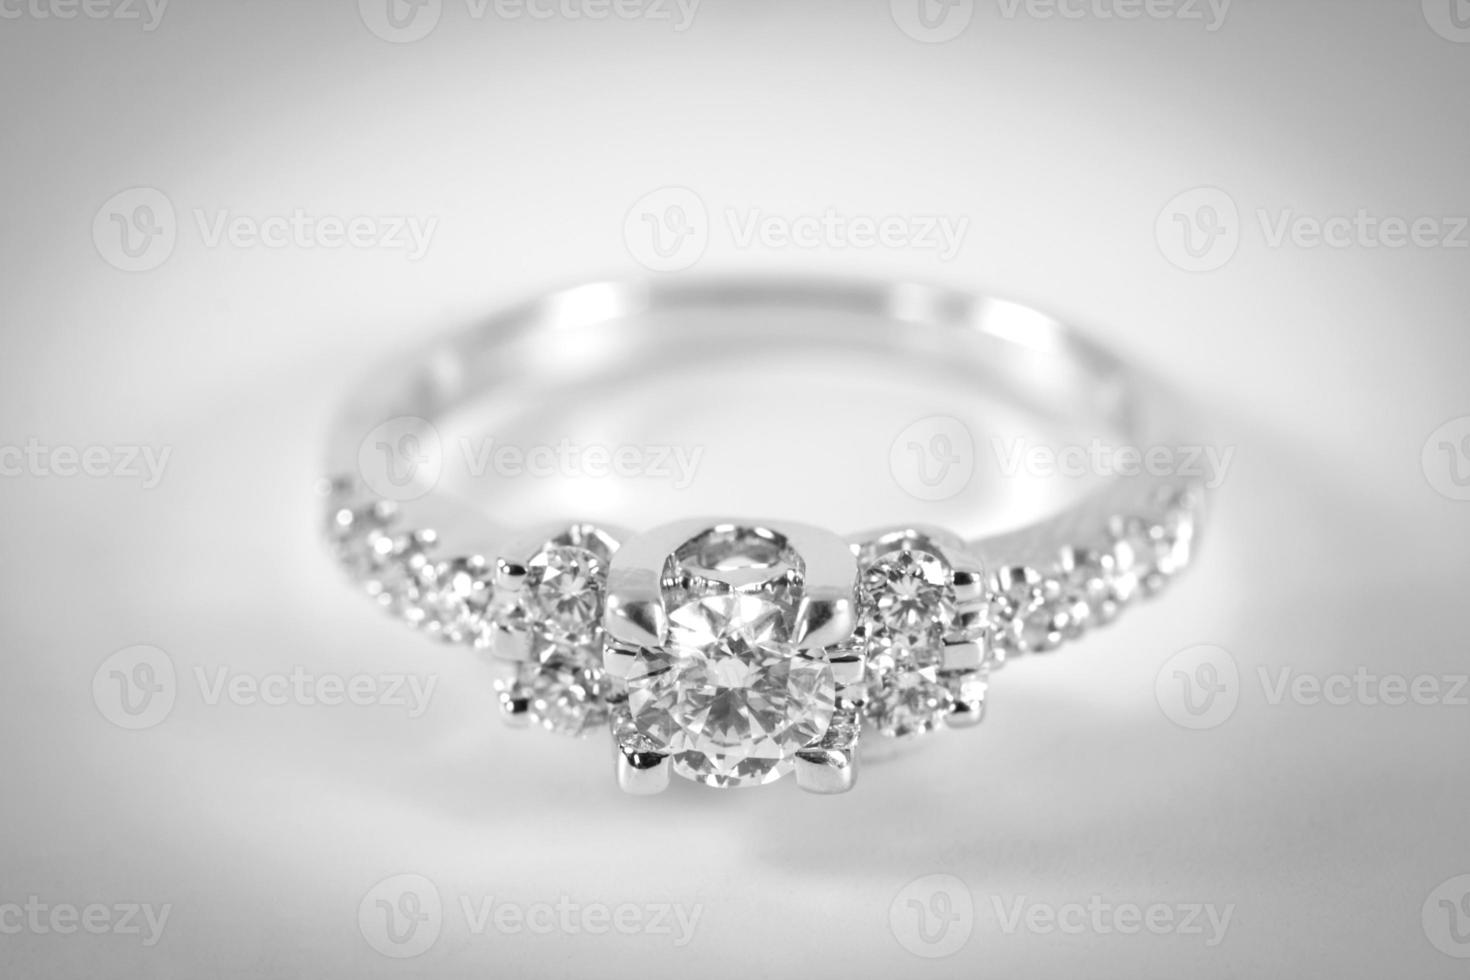 The engagement ring on white background. photo